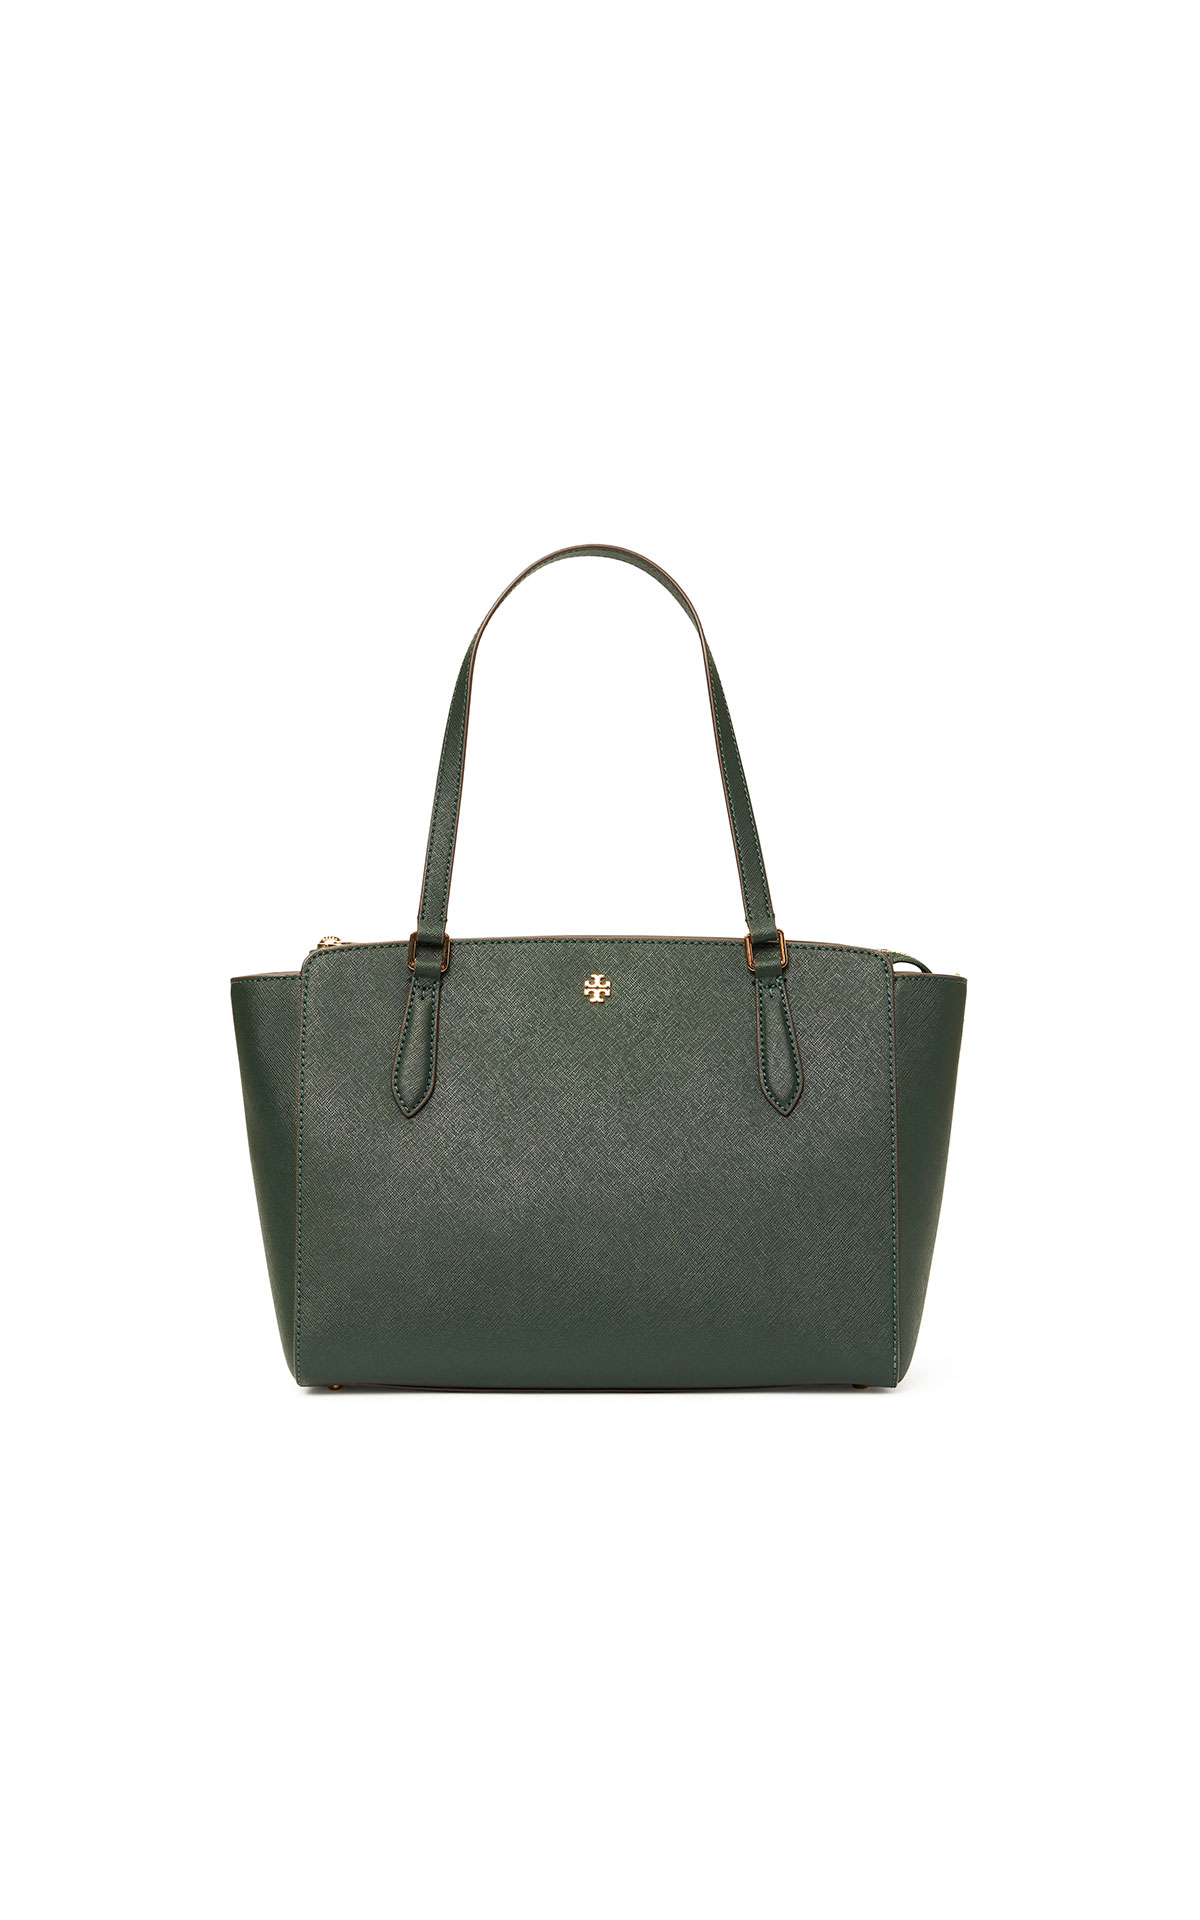 Tory Burch Emerson small top zip tote in Jitney green at The Bicester Village Shopping Collection